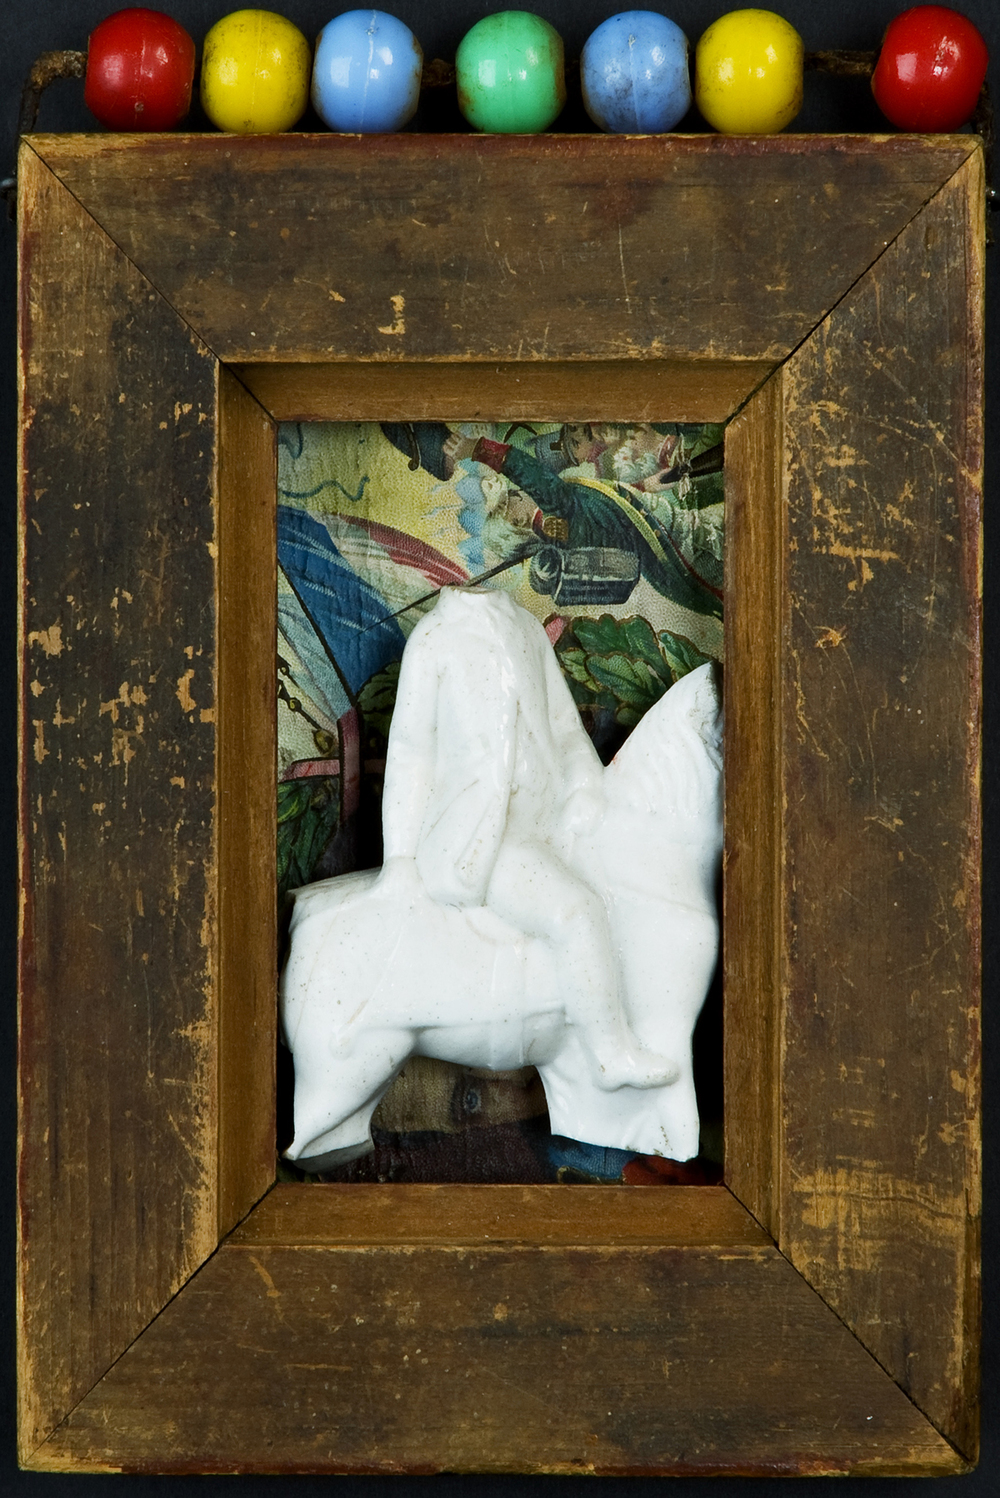 Headless Napoleon on Headless Horse, 2009, 7 x 5 (Sold)